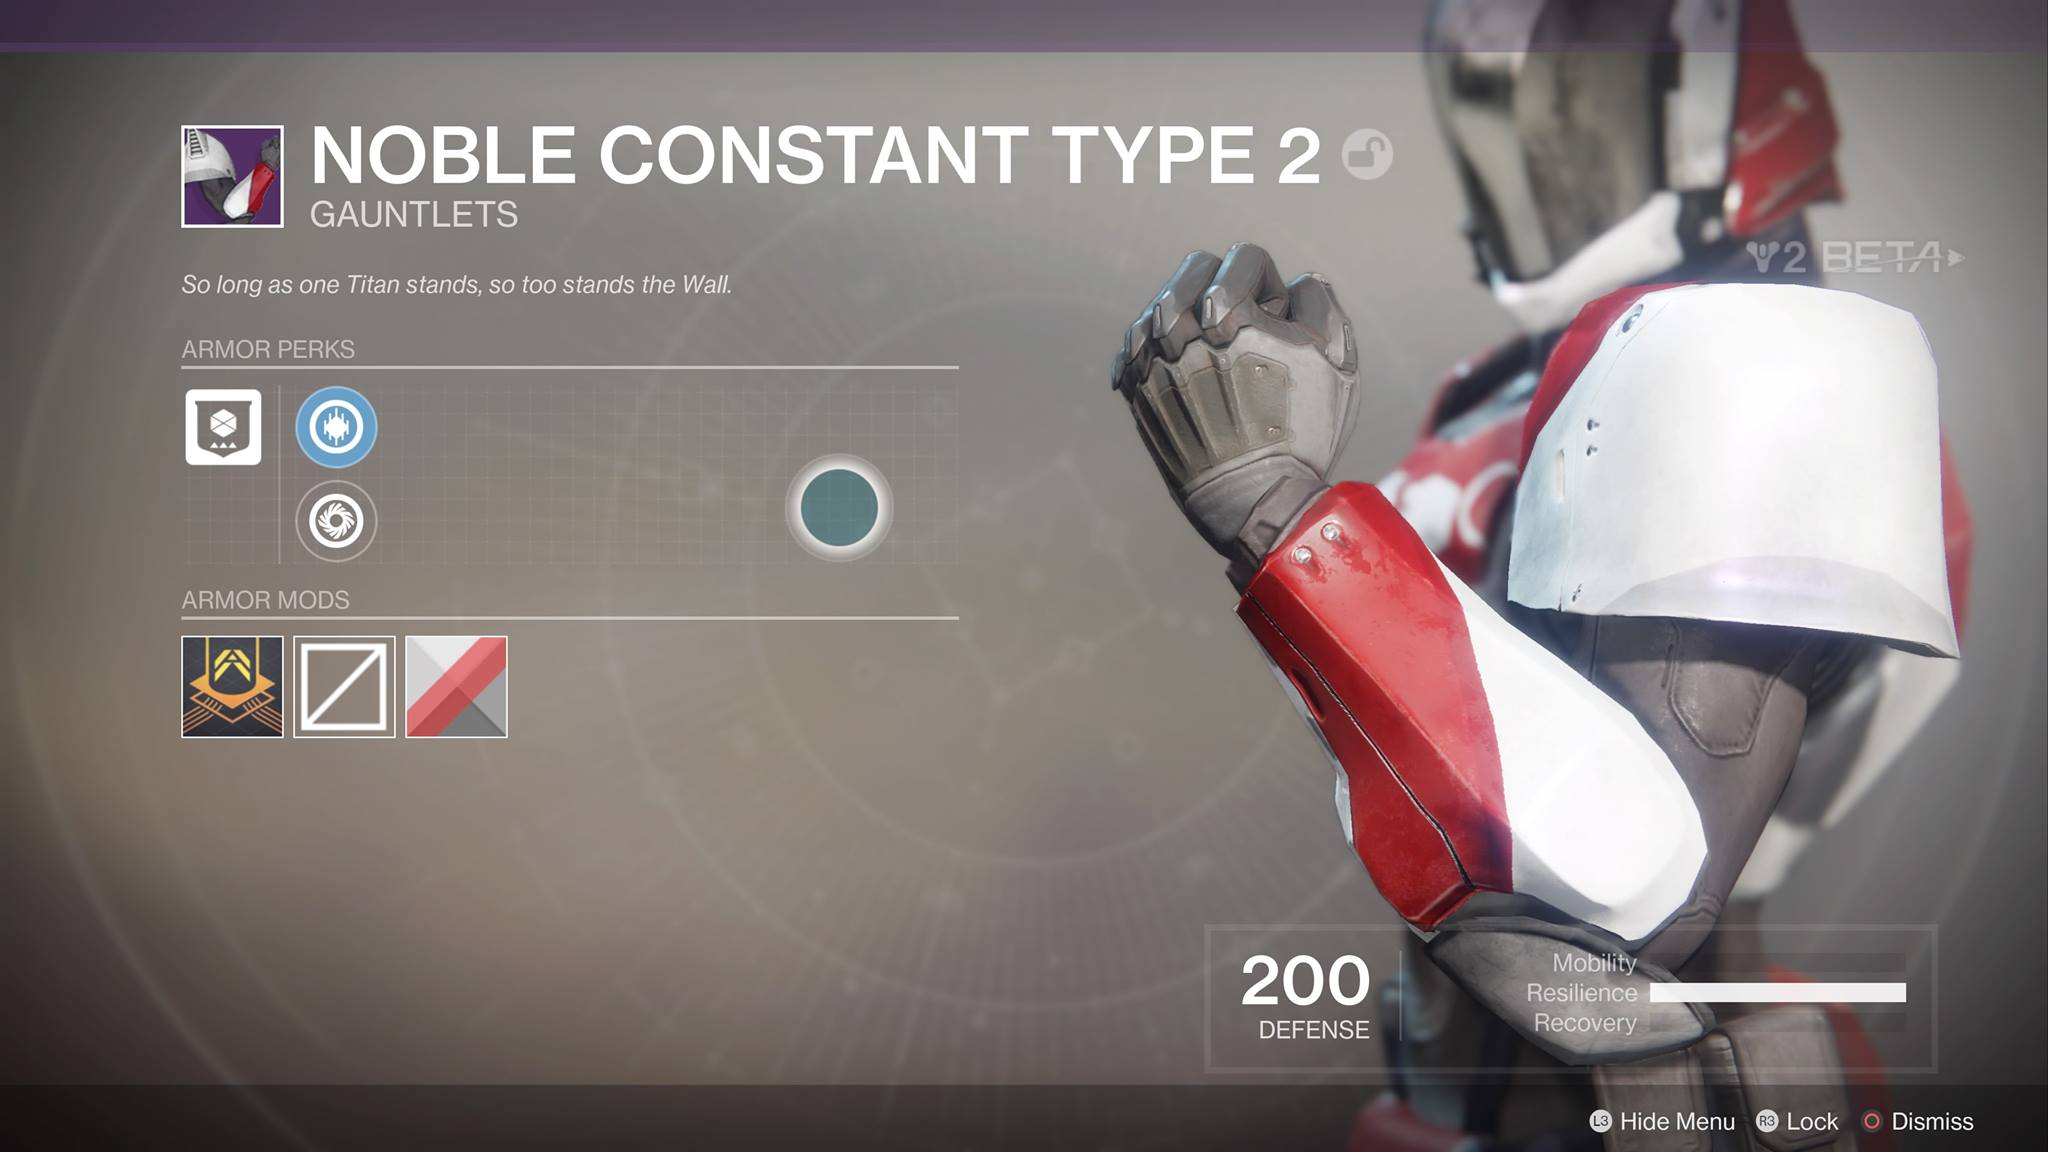 destiny_2_beta_guide_noble_constant_type_2_gauntlets